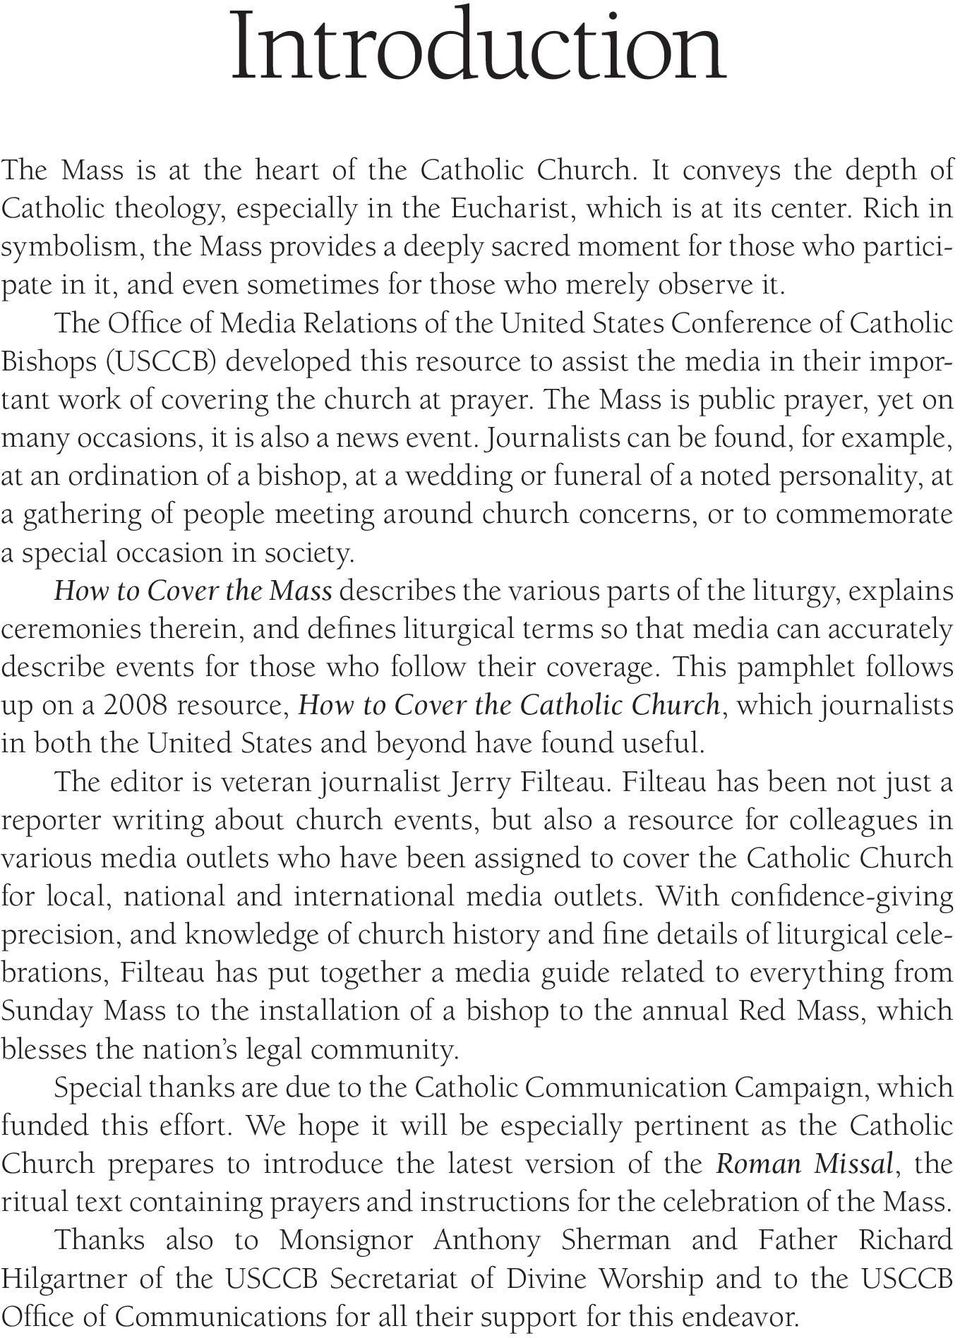 The Office of Media Relations of the United States Conference of Catholic Bishops (USCCB) developed this resource to assist the media in their important work of covering the church at prayer.